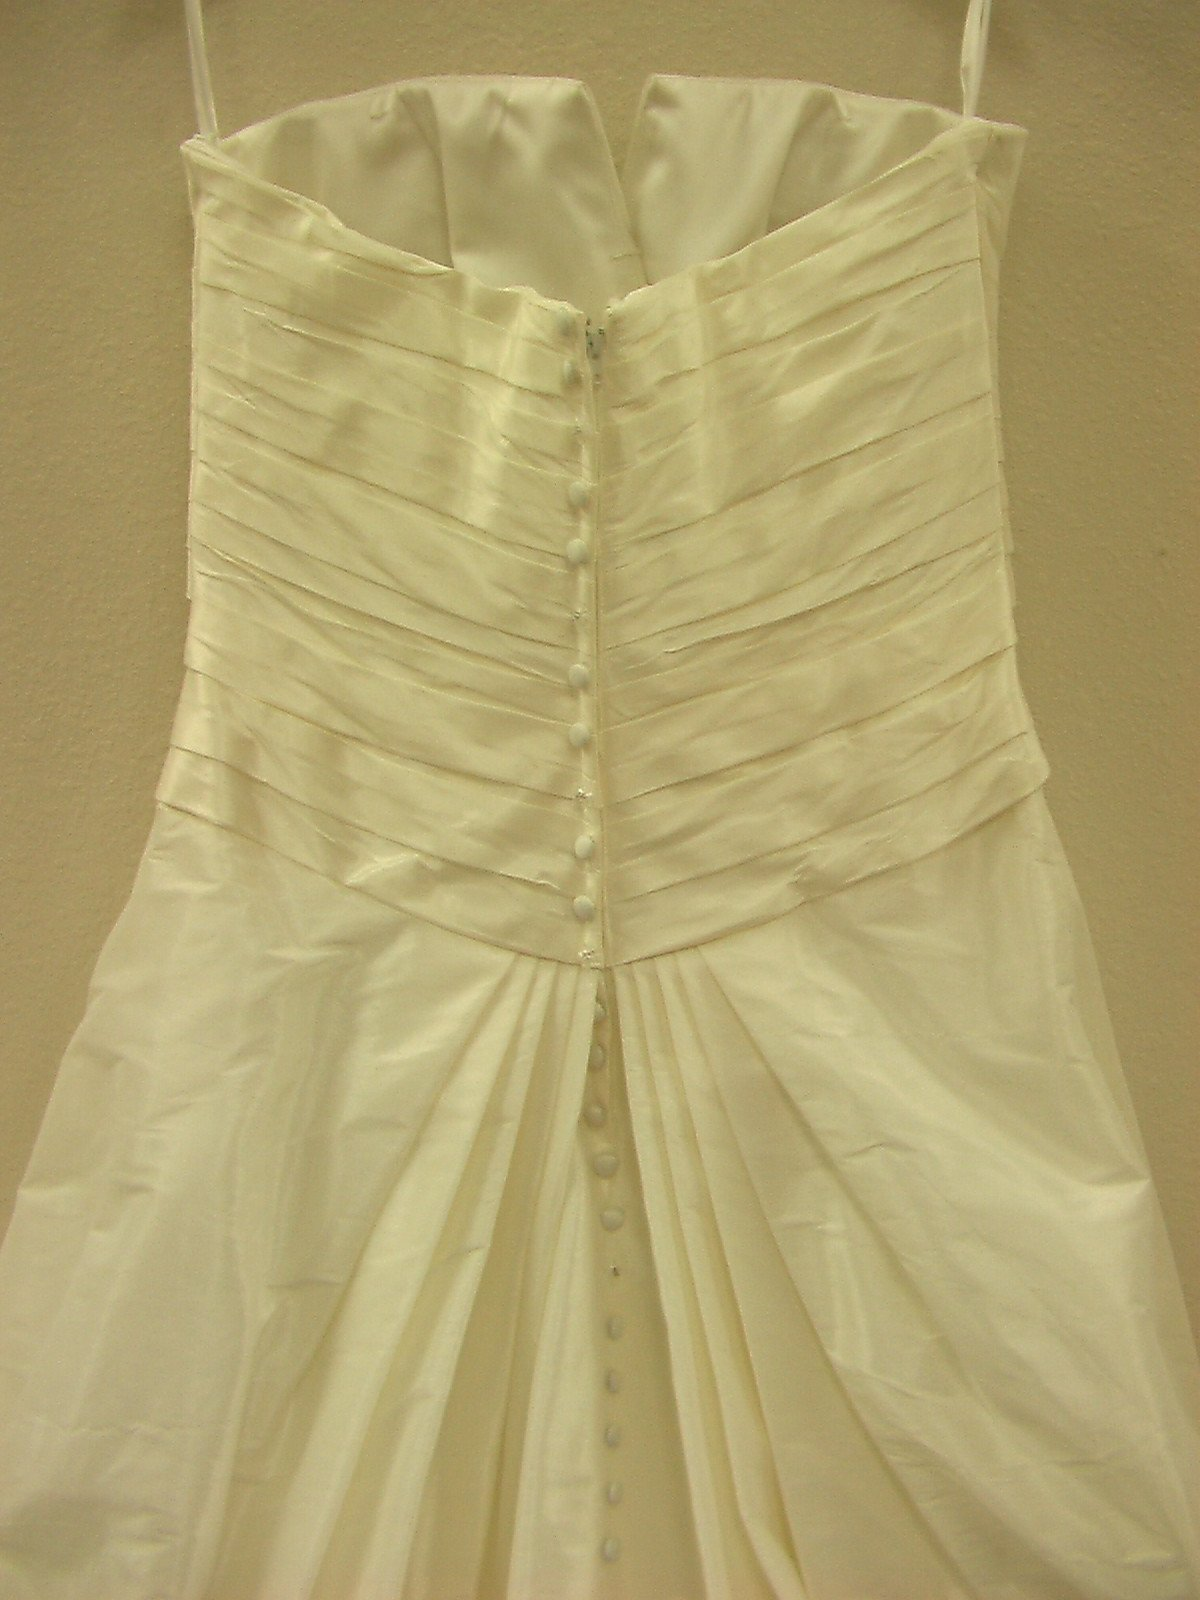 PC 18752 Antique Ivory/Silver size 14 In Stock Wedding Dress - Tom's Bridal